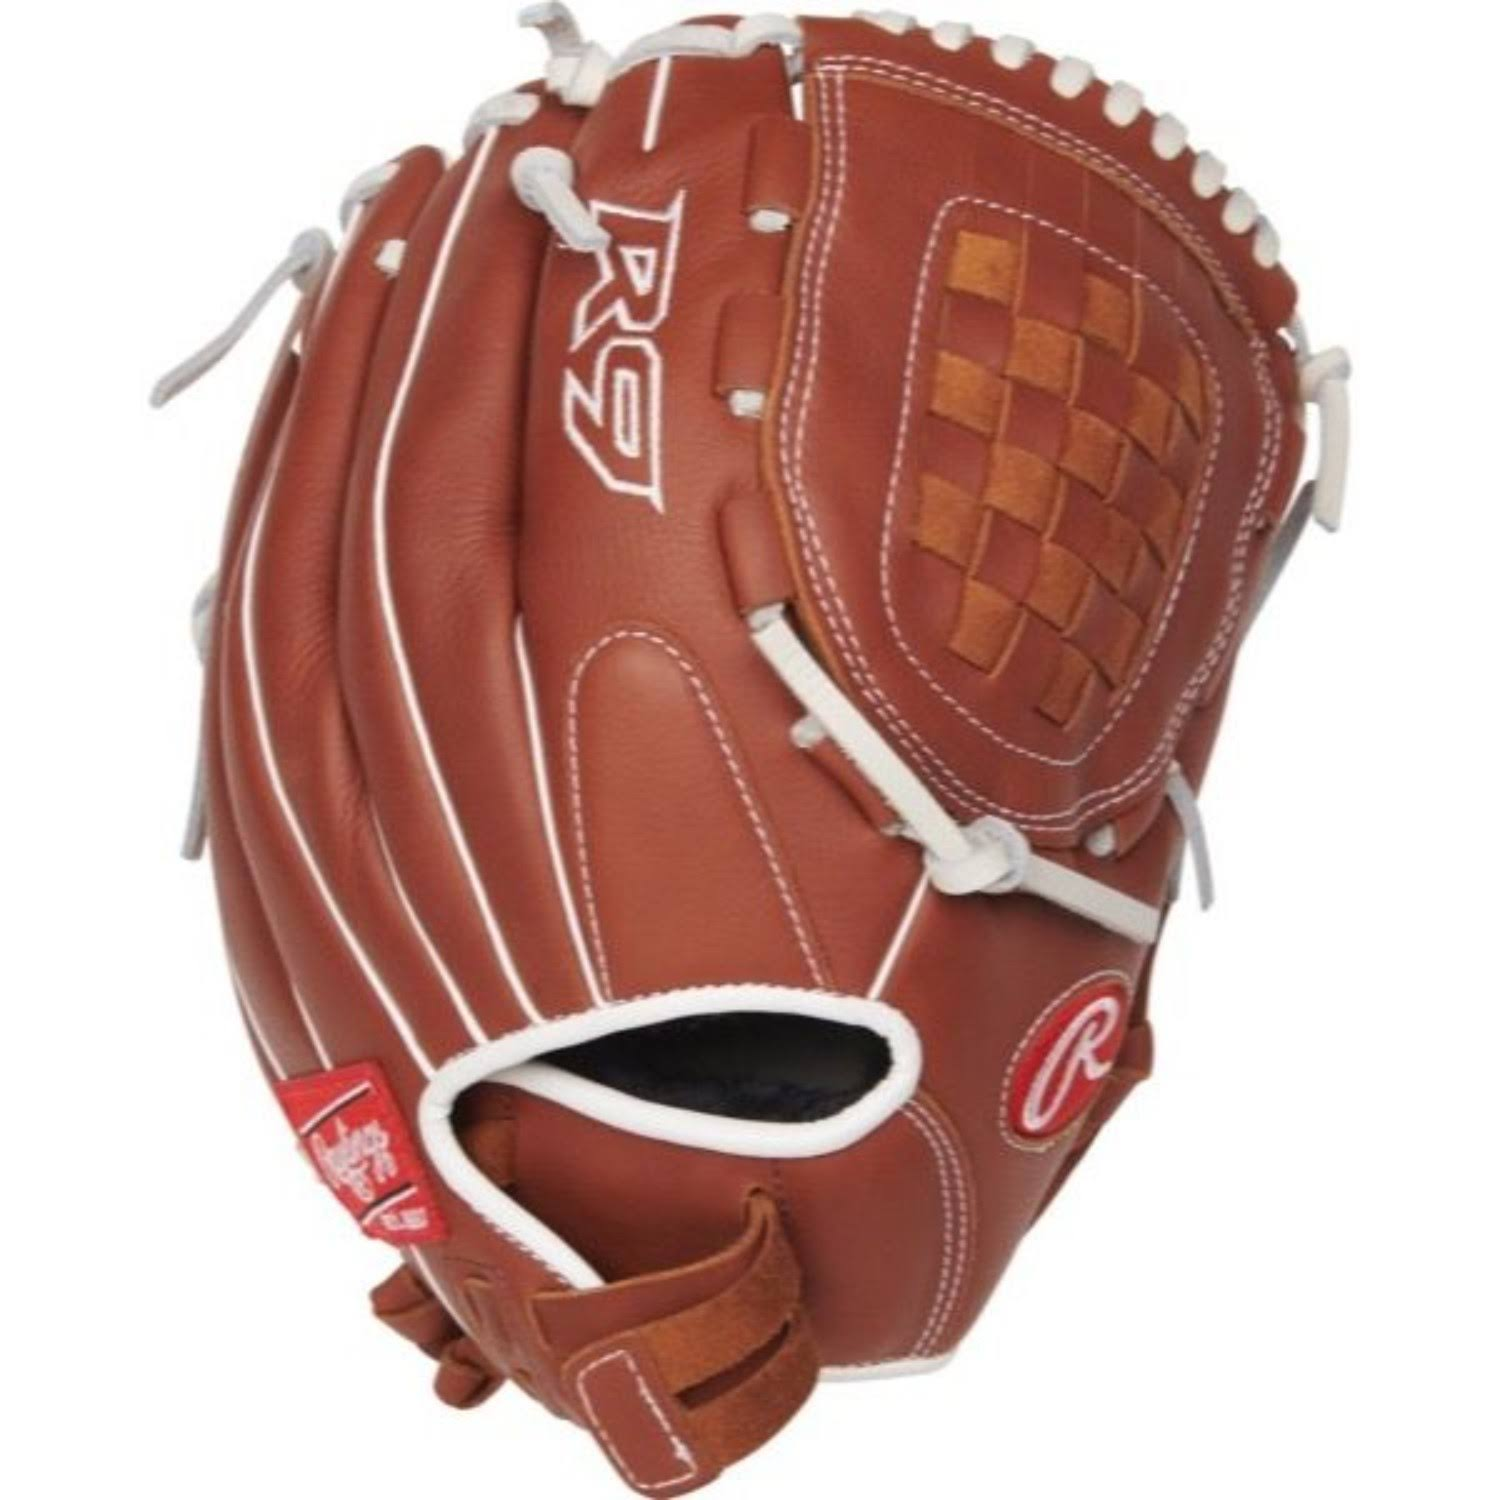 Rawlings R9 Series Softball Glove - 12""